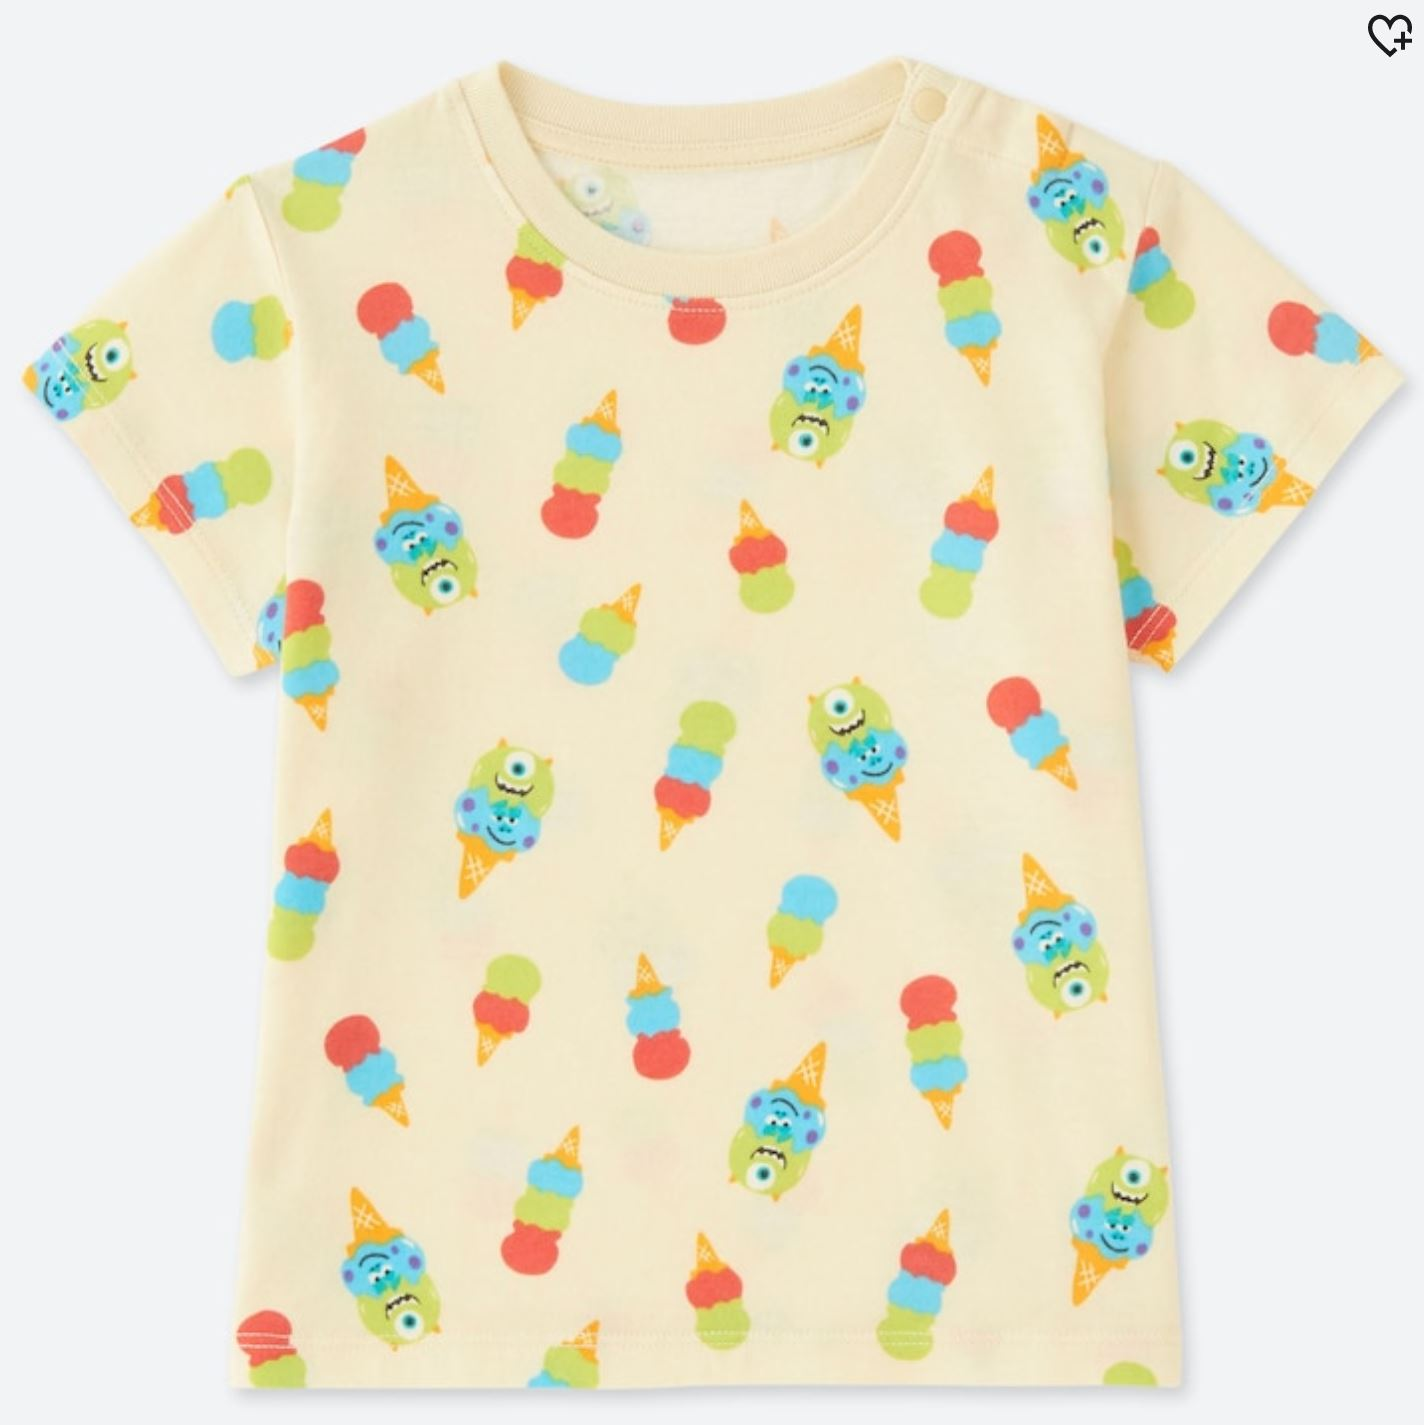 I Scream - I'm pretty picky about clothes. I'm not saying I'm fashionable, but rather it takes a unique something to make me desire an article. I just picked up this awesome Monsters Inc. Ice Cream Cone shirt from Uniqlo. Looks super good on Elliot.